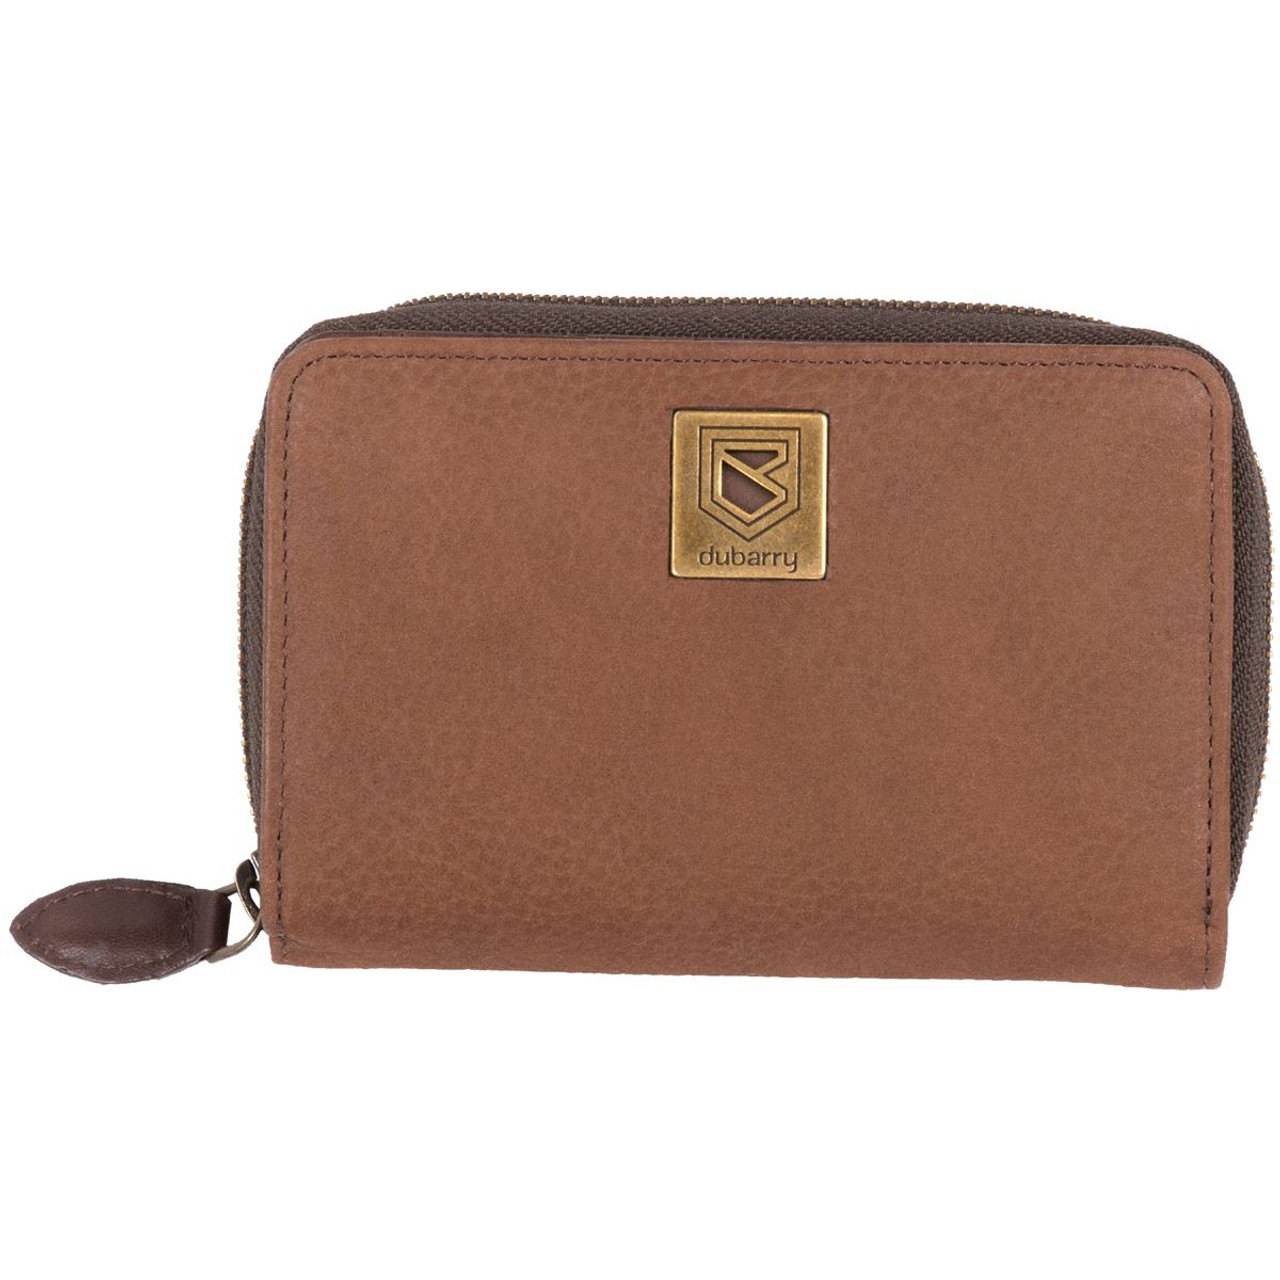 Dubarry Enniskerry Ladies Wallet in Walnut